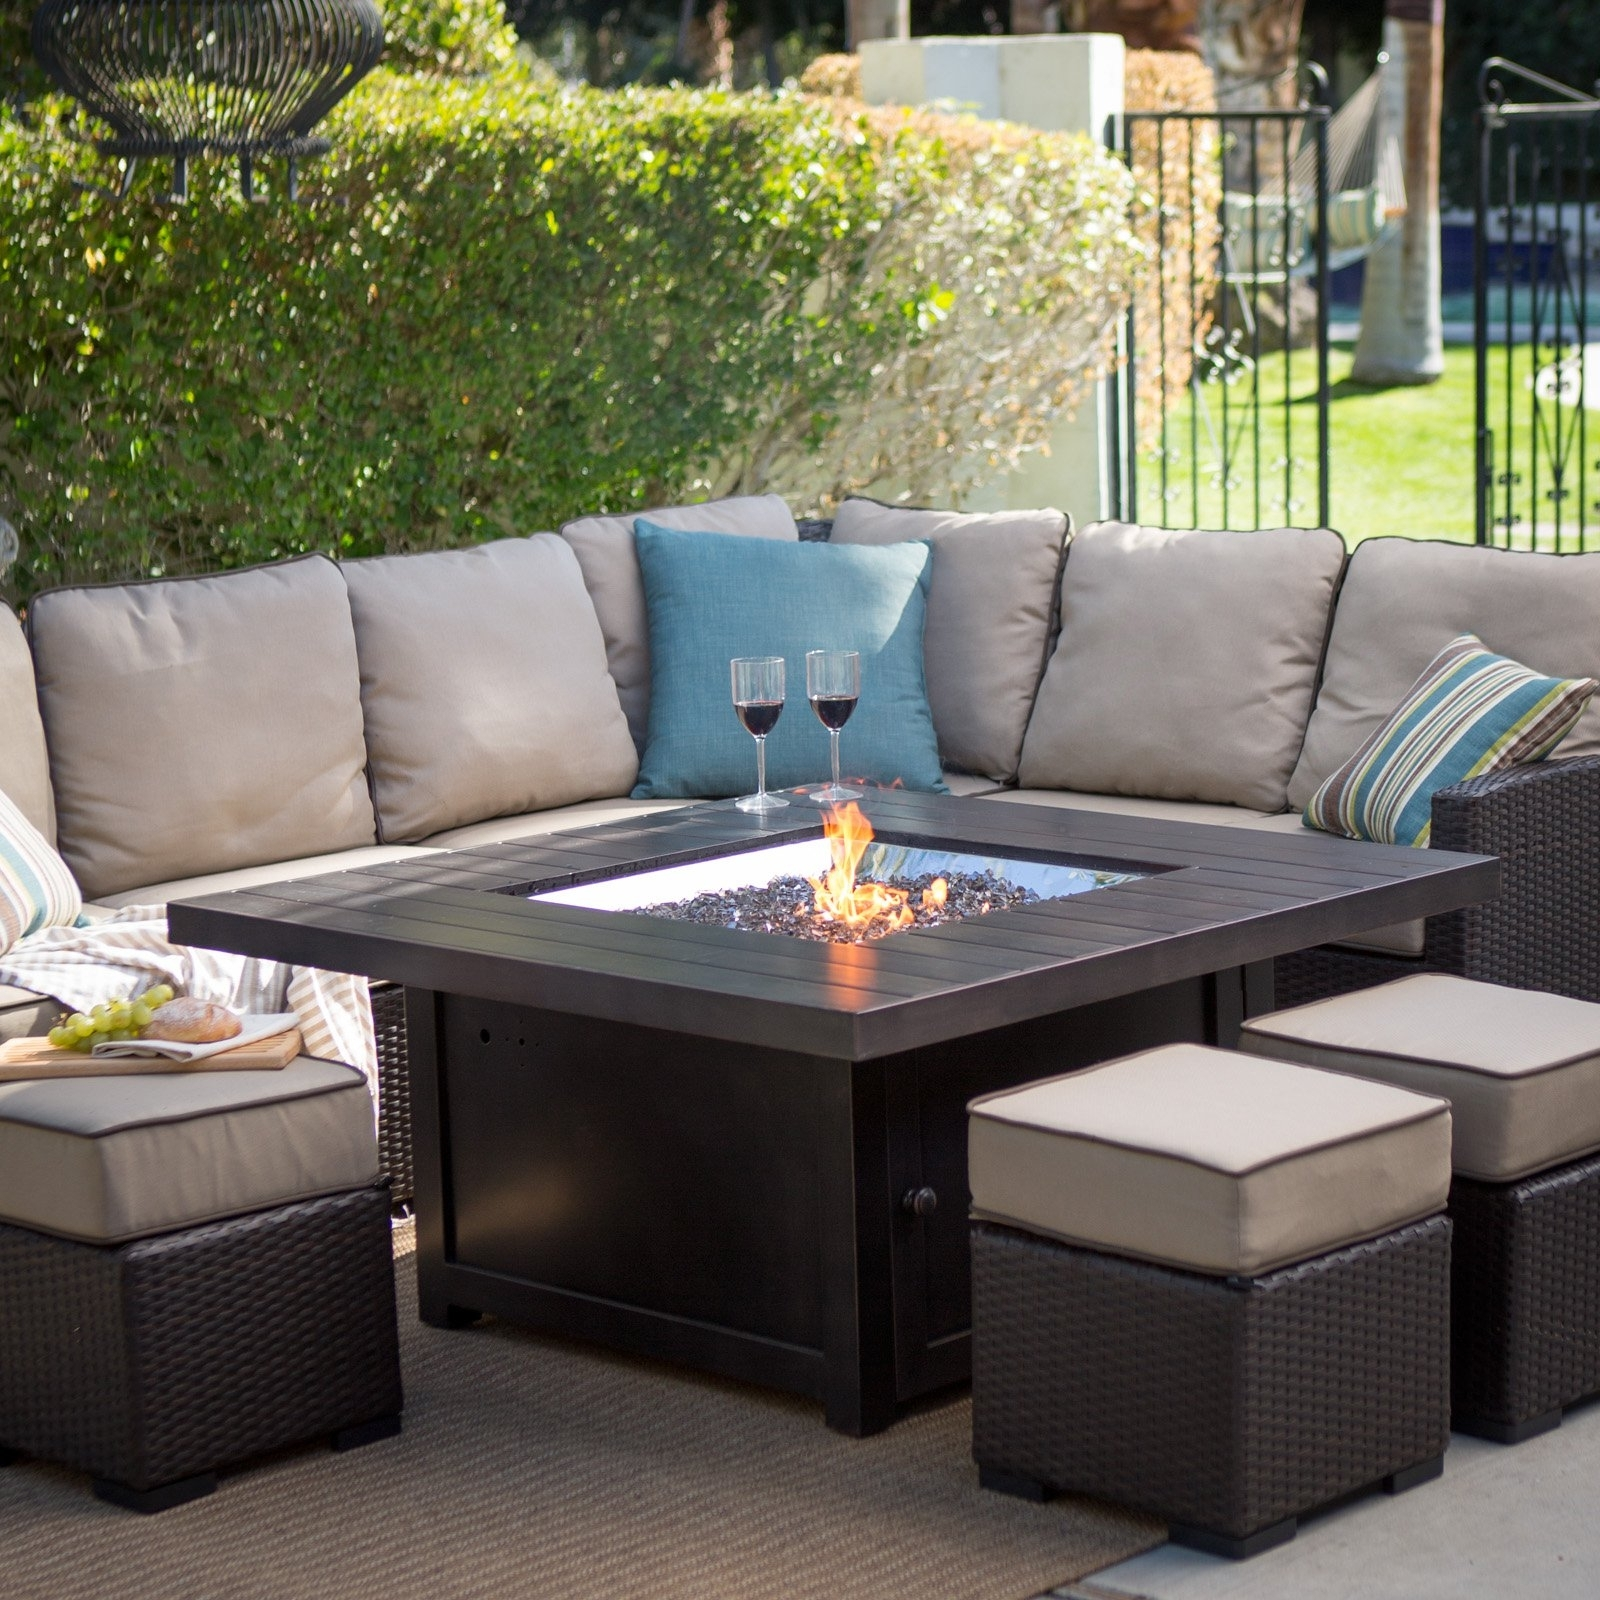 Furniture: High Quality Patio Furniture Columbus Ohio And Fire Pit In Trendy Patio Furniture Conversation Sets With Fire Pit (View 10 of 20)